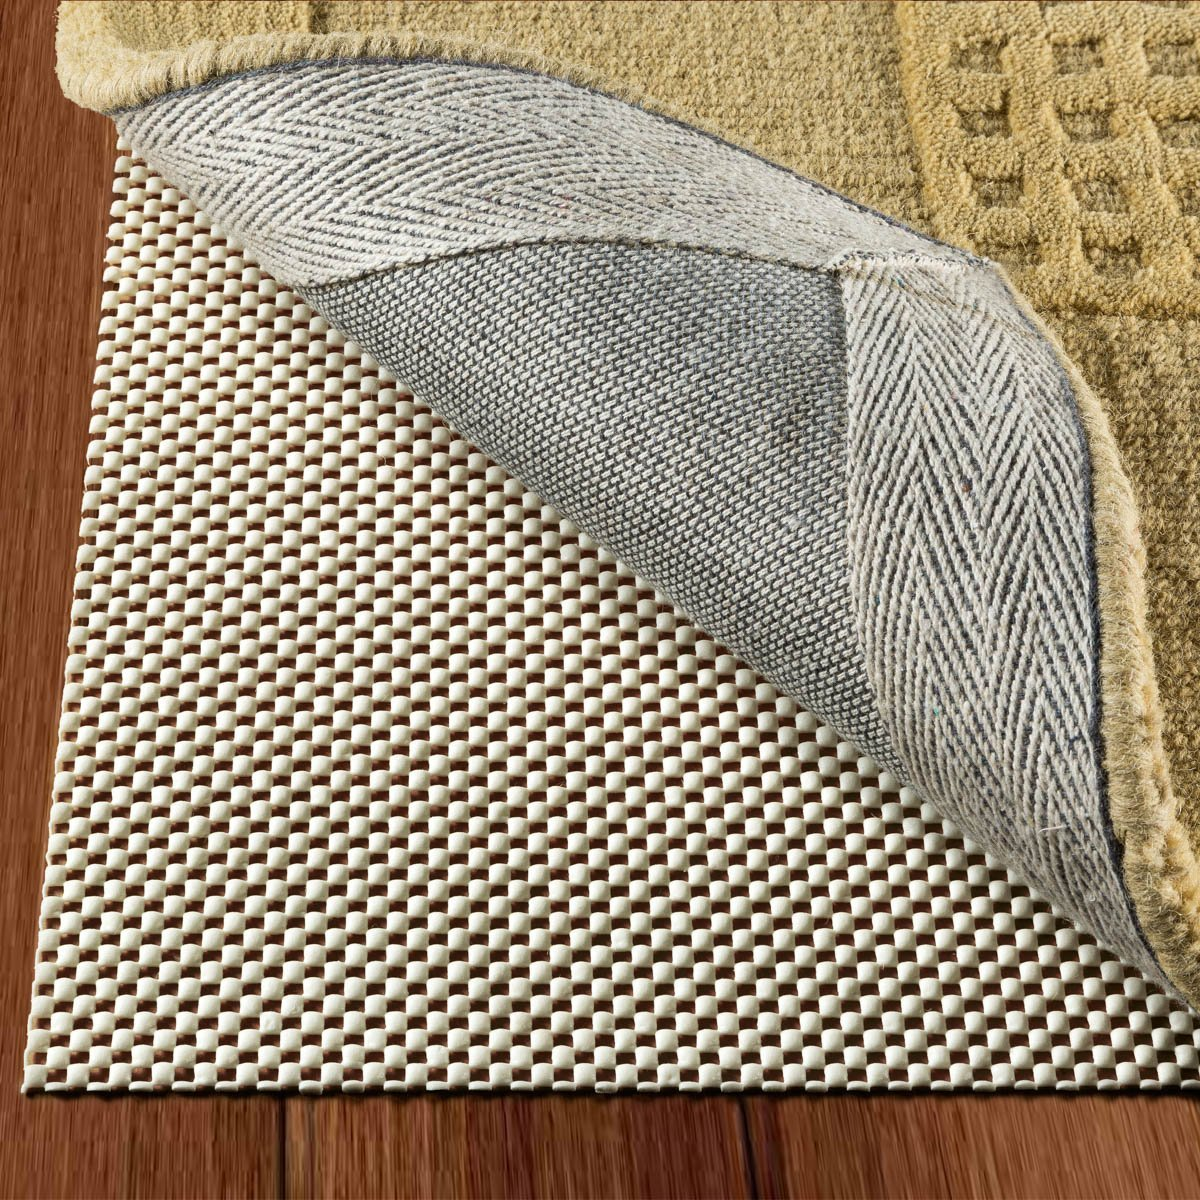 Non Slip Area Rug Pad Size 3 X 5 Extra Strong Grip